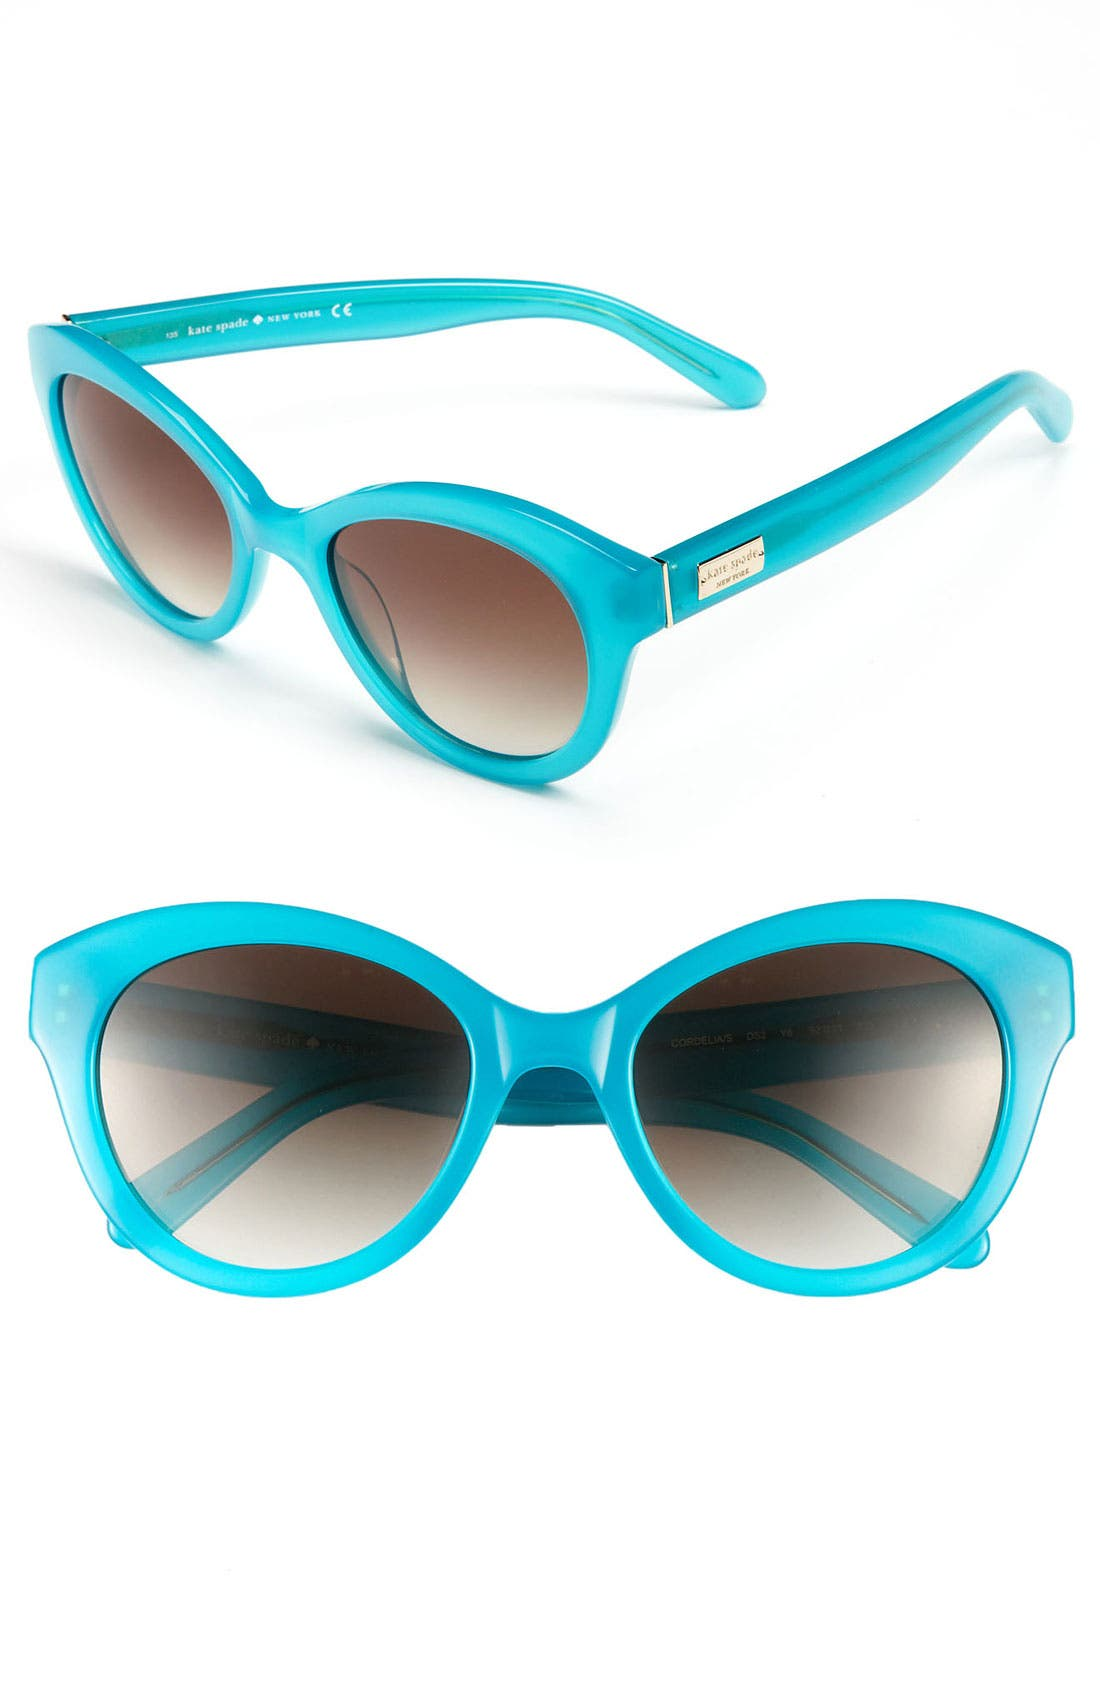 Main Image - kate spade new york 'cordelia' 52mm retro sunglasses